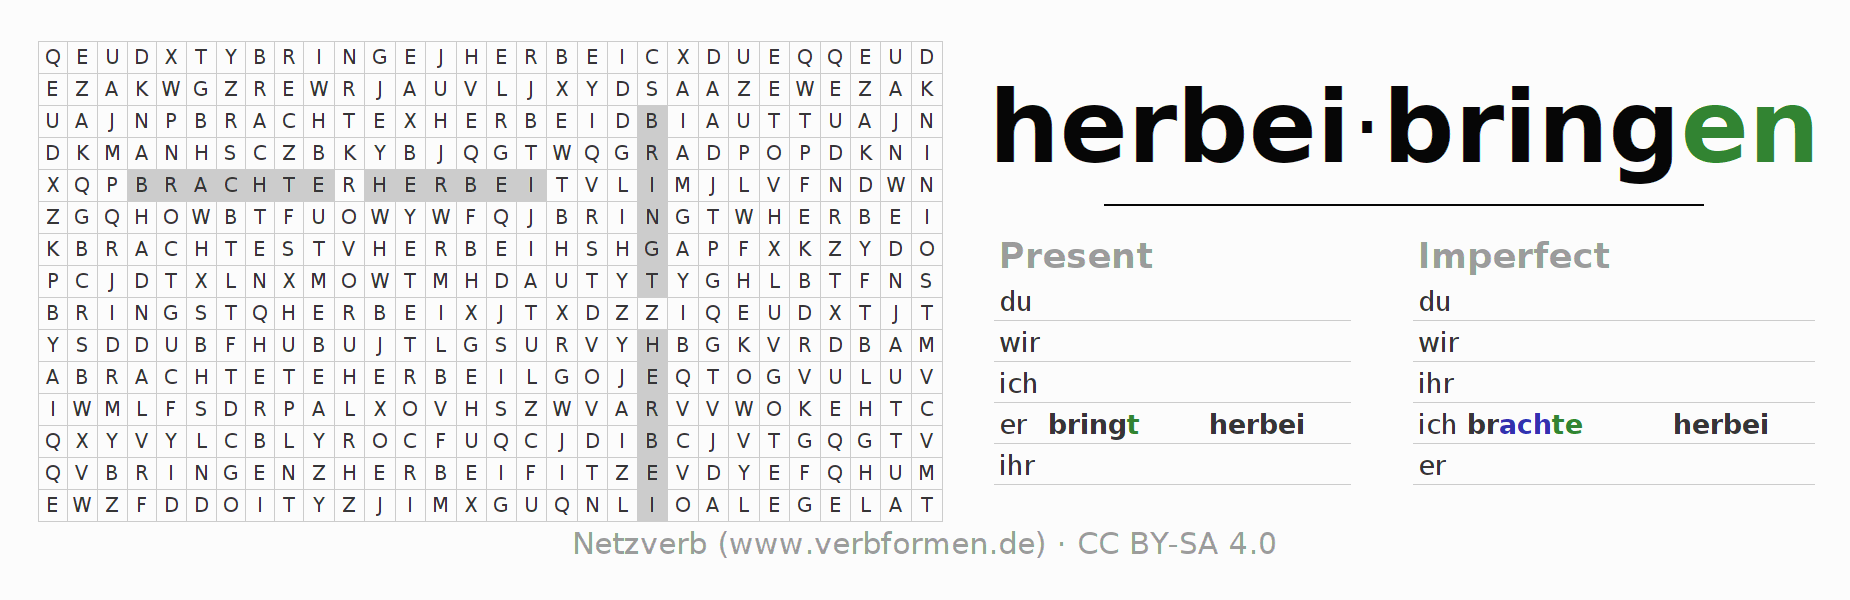 Word search puzzle for the conjugation of the verb herbeibringen